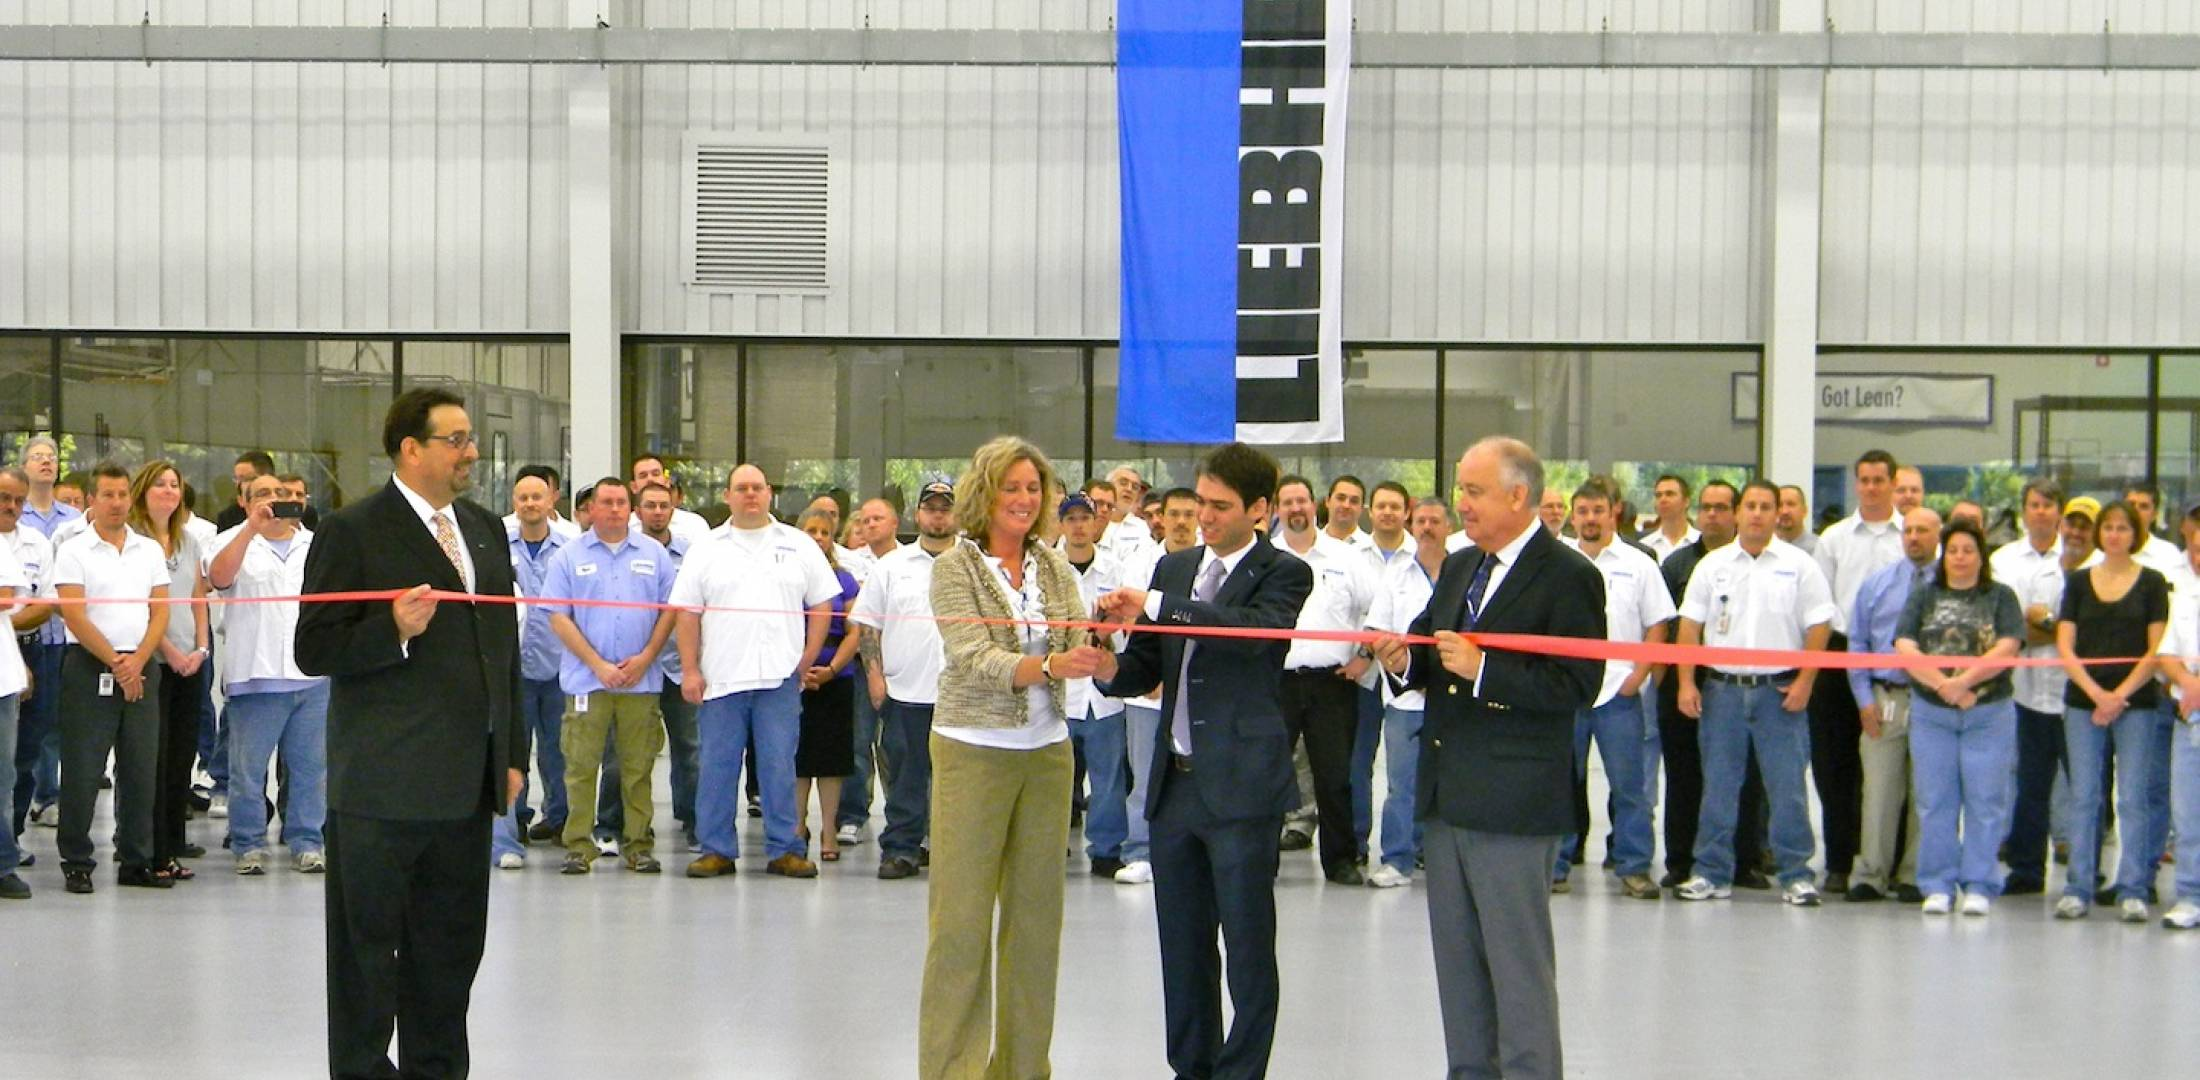 Liebherr-Aerospace Saline staged a ribbon-cutting ceremony for its new expansion on June 14.